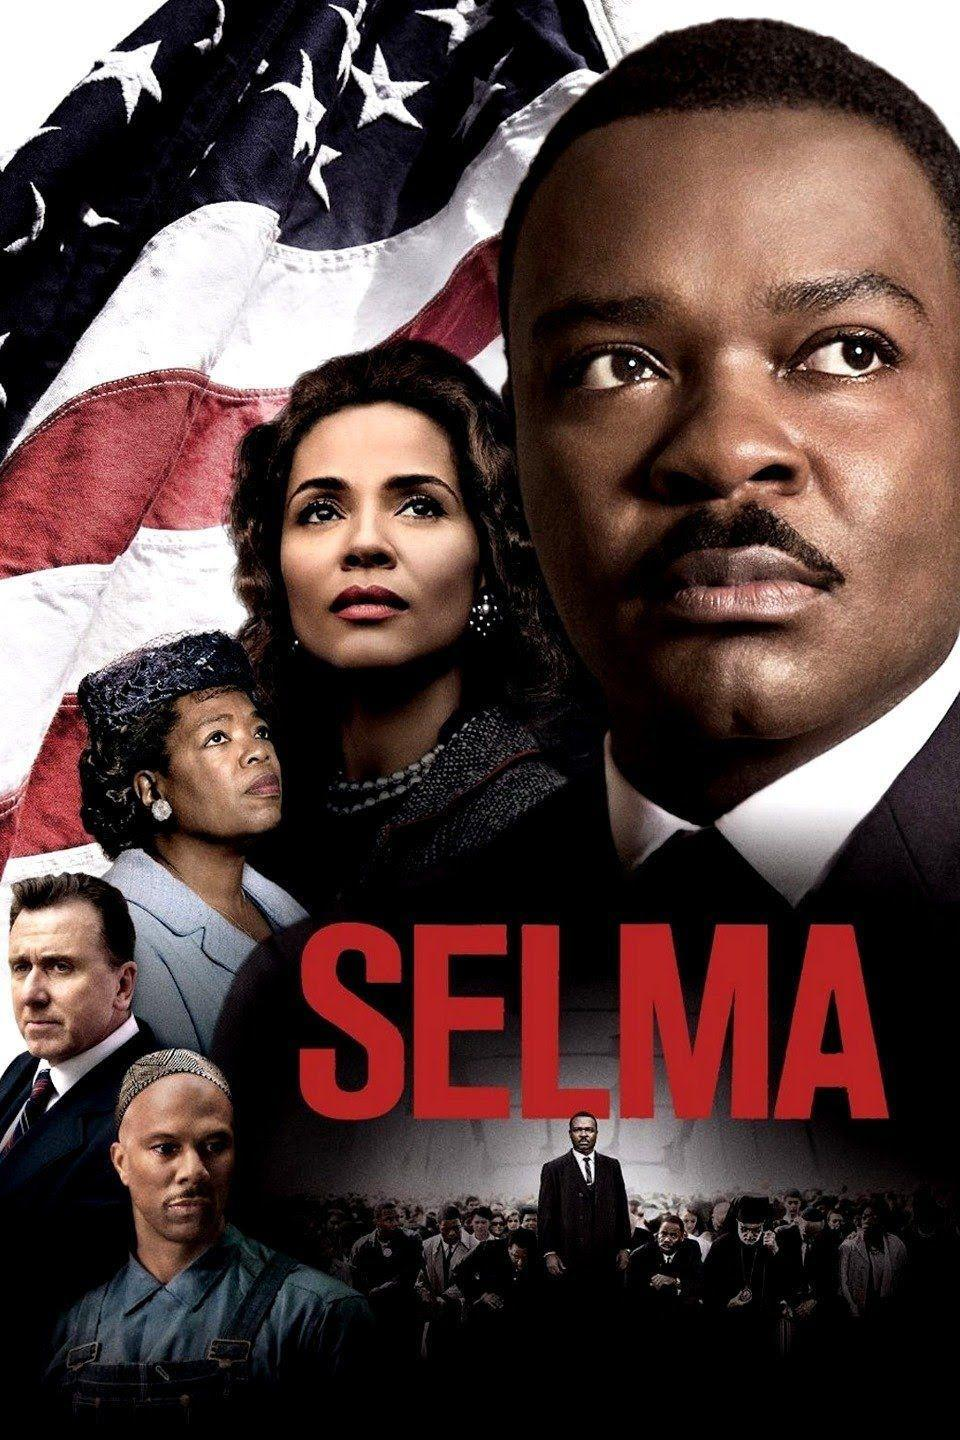 """<p><a class=""""link rapid-noclick-resp"""" href=""""https://www.amazon.com/Selma-David-Oyelowo/dp/B00S0X4HK8/ref=sr_1_1?dchild=1&keywords=selma&qid=1614189751&sr=8-1&tag=syn-yahoo-20&ascsubtag=%5Bartid%7C10063.g.35716832%5Bsrc%7Cyahoo-us"""" rel=""""nofollow noopener"""" target=""""_blank"""" data-ylk=""""slk:Watch Now"""">Watch Now</a></p><p>Ava DuVernay directed this historical drama that is based on the 1965 voting rights marches from Selma to Montgomery led by Martin Luther King Jr., <a href=""""https://www.townandcountrymag.com/society/politics/a32767295/john-lewis-philanthropy/"""" rel=""""nofollow noopener"""" target=""""_blank"""" data-ylk=""""slk:John Lewis"""" class=""""link rapid-noclick-resp"""">John Lewis</a>, and Hosea Williams, and which led to the passage of the Voting Rights Act.</p>"""